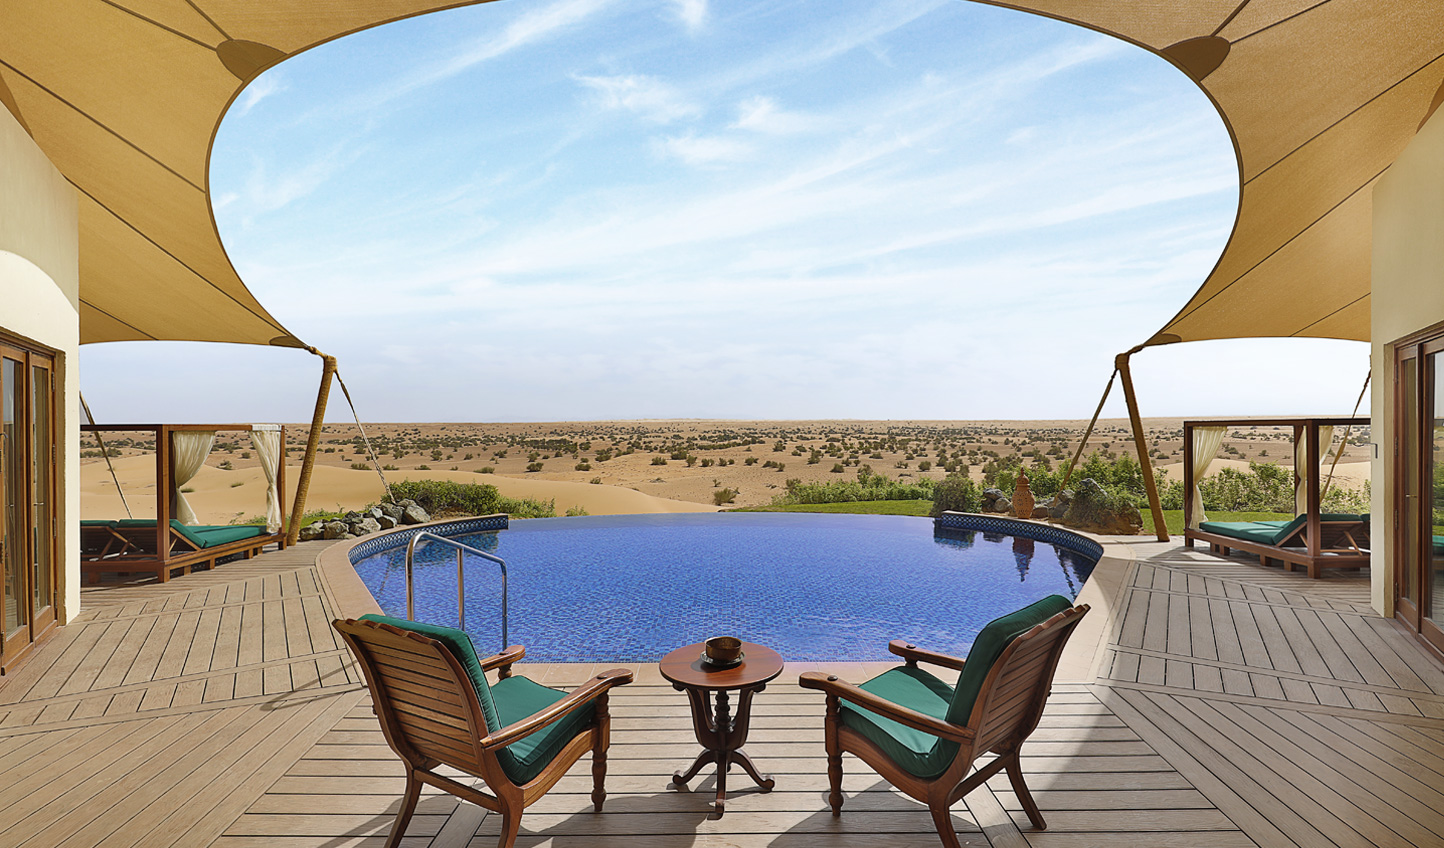 Al Maha boasts unbelievable views from every corner of the resort, but the view from the Presidential Suite pool is out of this world